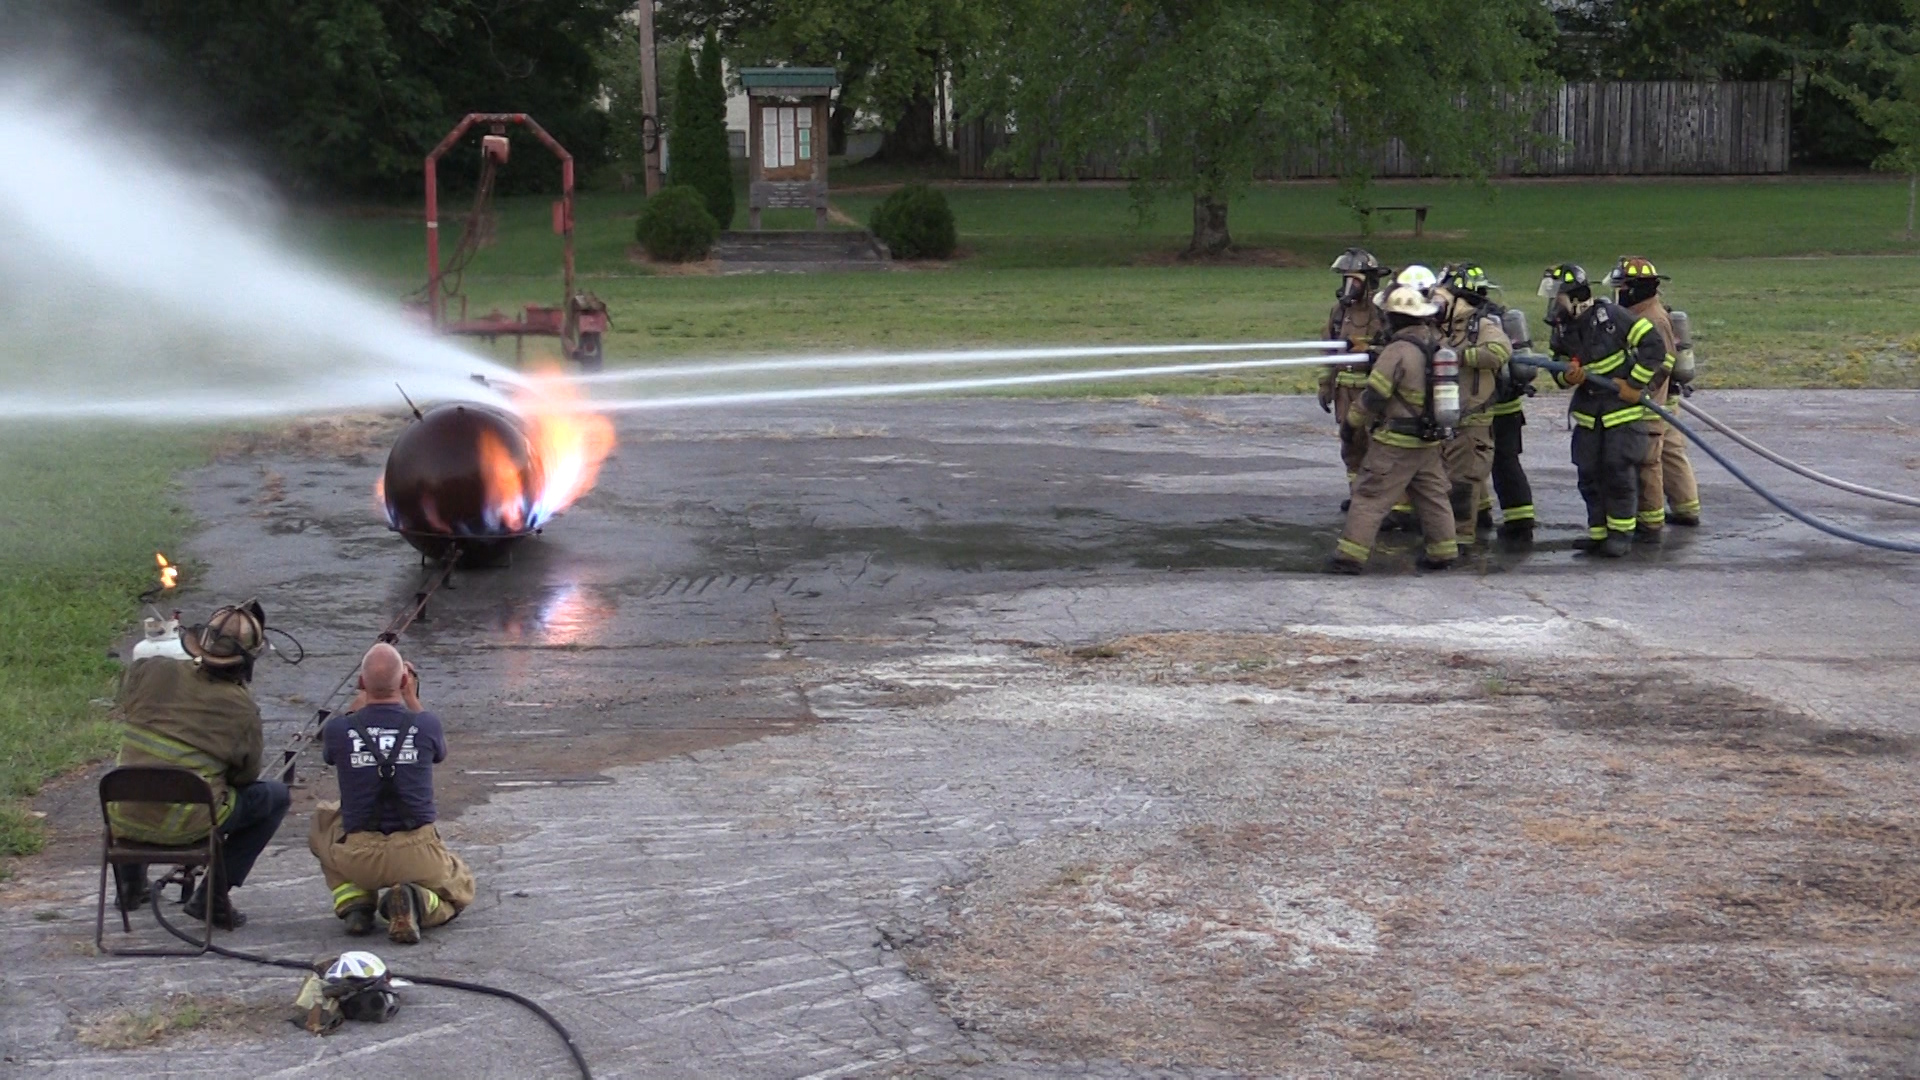 VIDEO: McMinnville Fire Department trains for propane fires